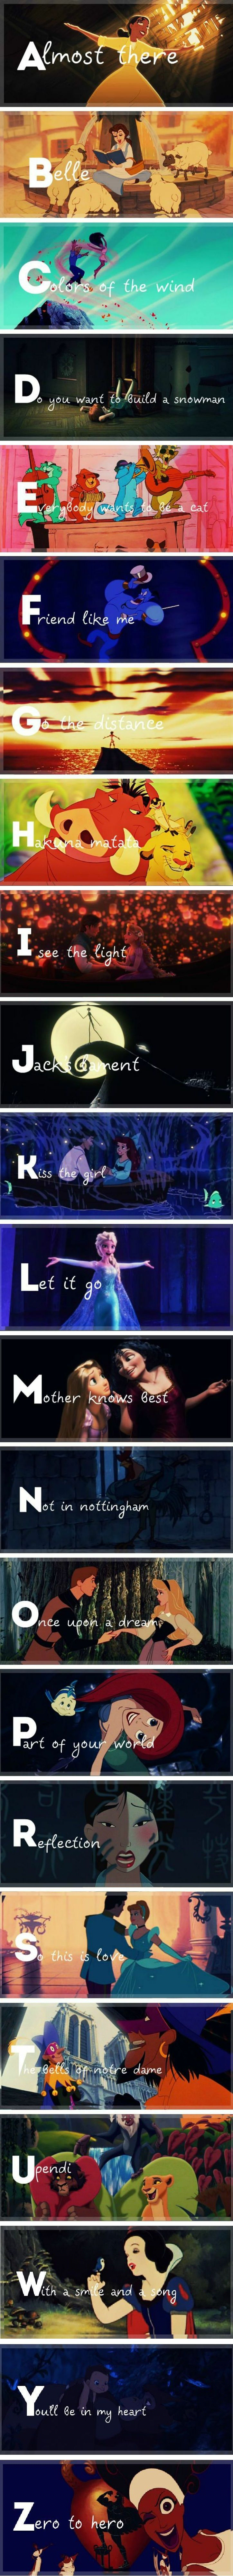 Disney song titles from A to (almost) Z